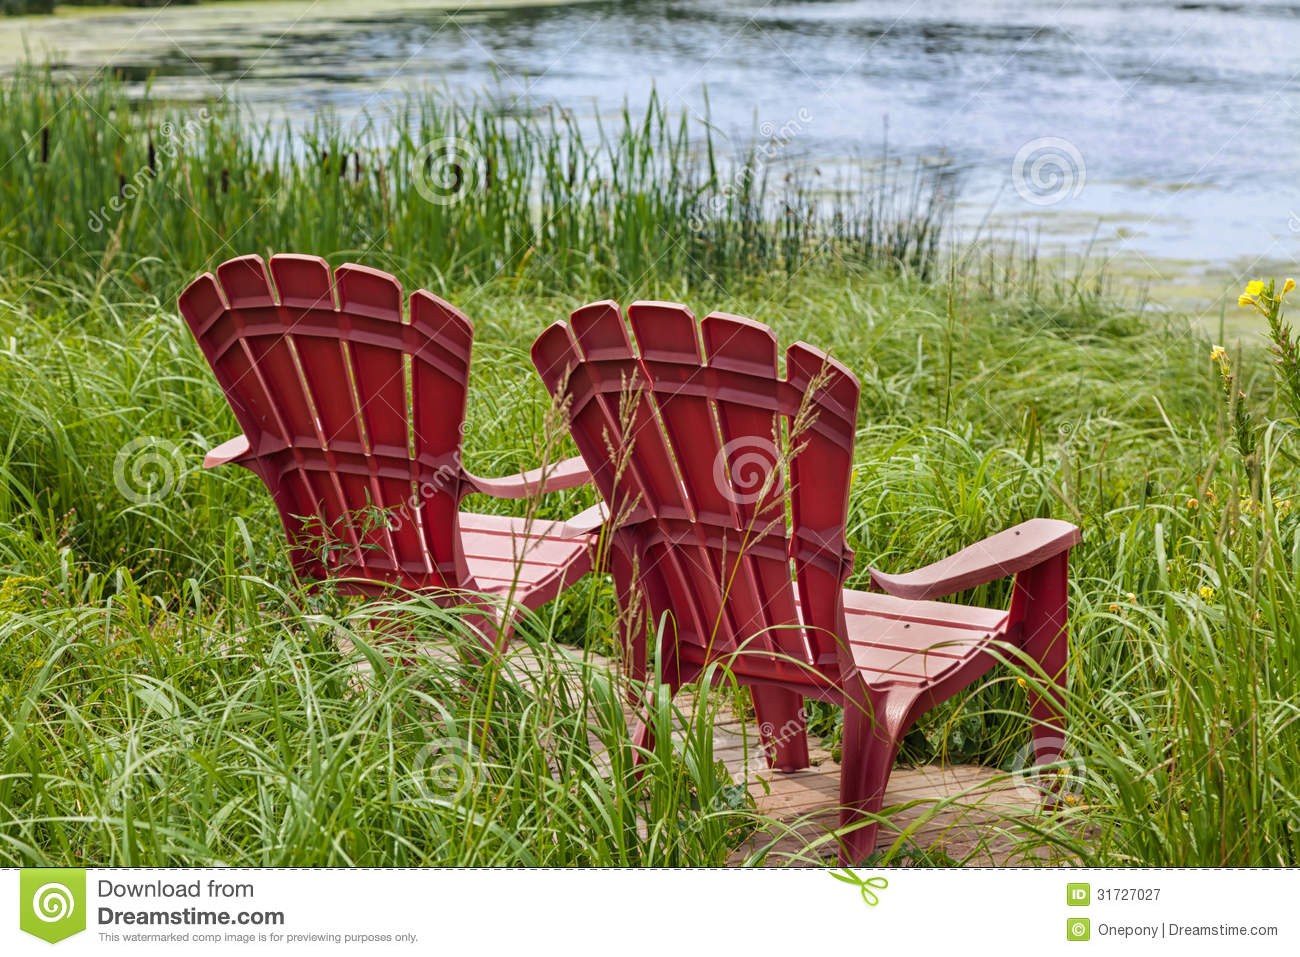 new river adirondack chairs american girl chair royalty free stock photography image 31727027